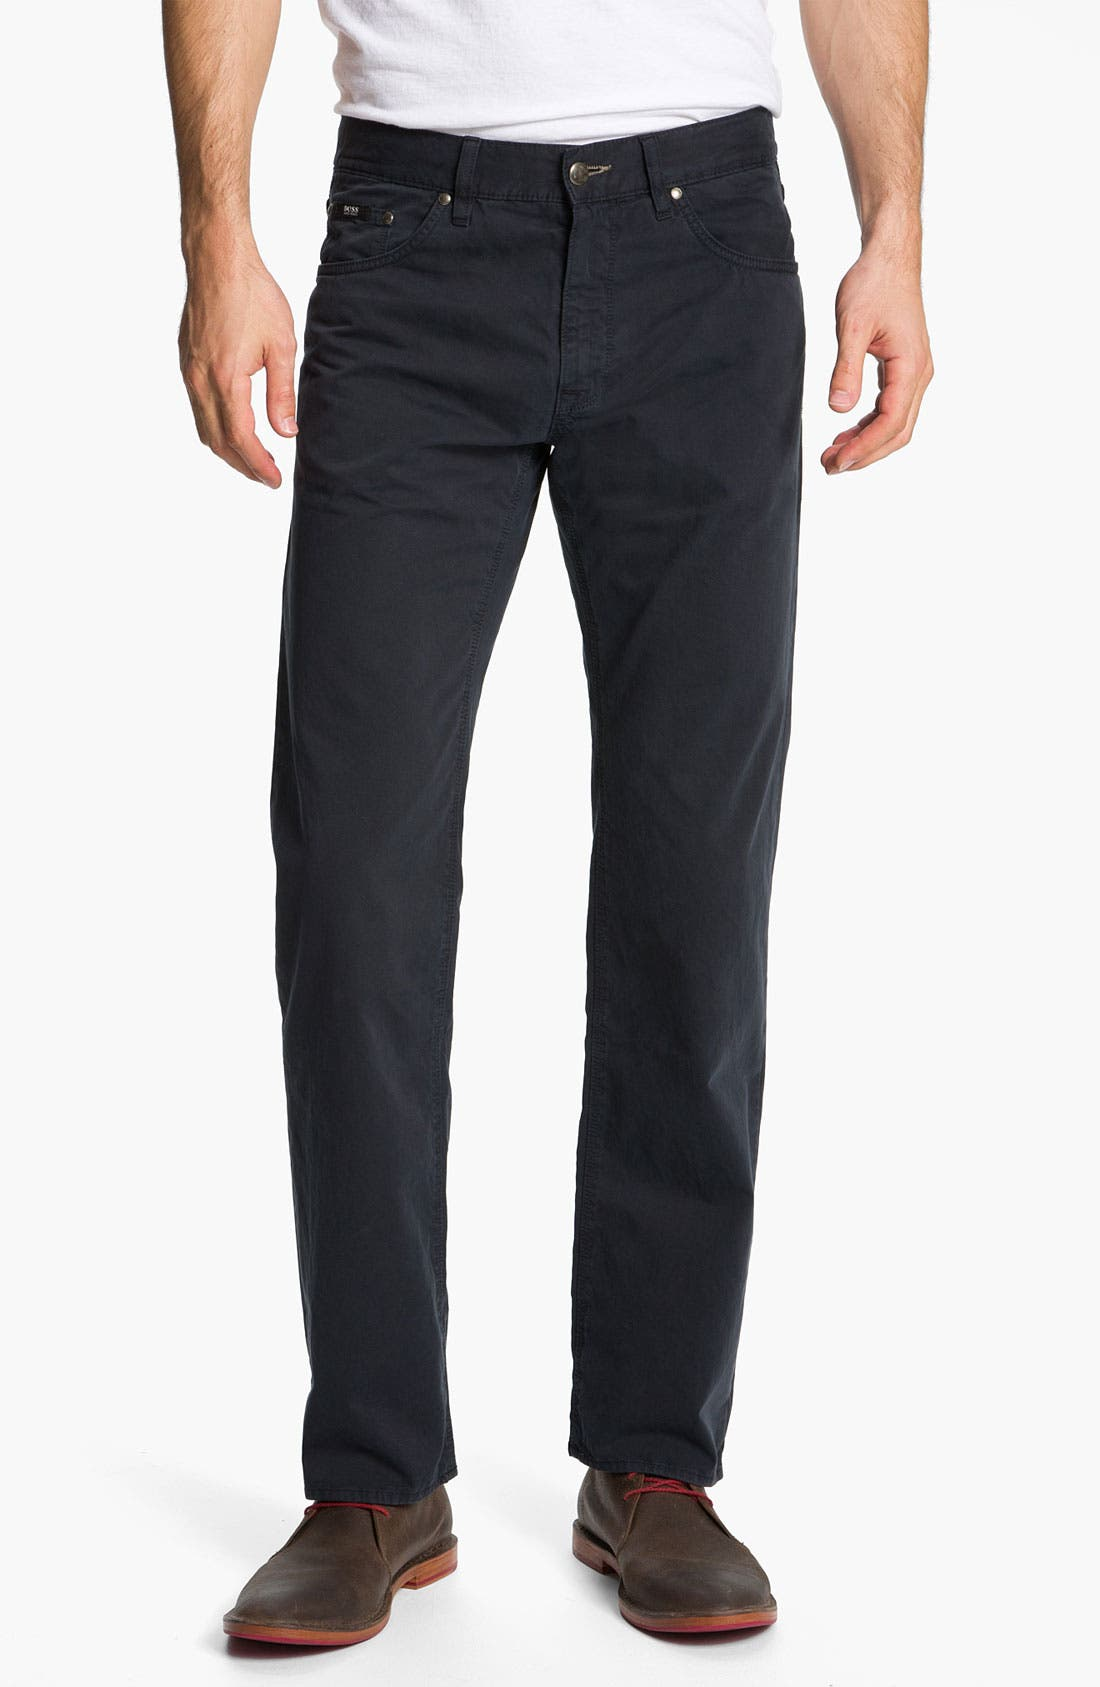 Alternate Image 1 Selected - BOSS Black 'Maine' Five Pocket Pants